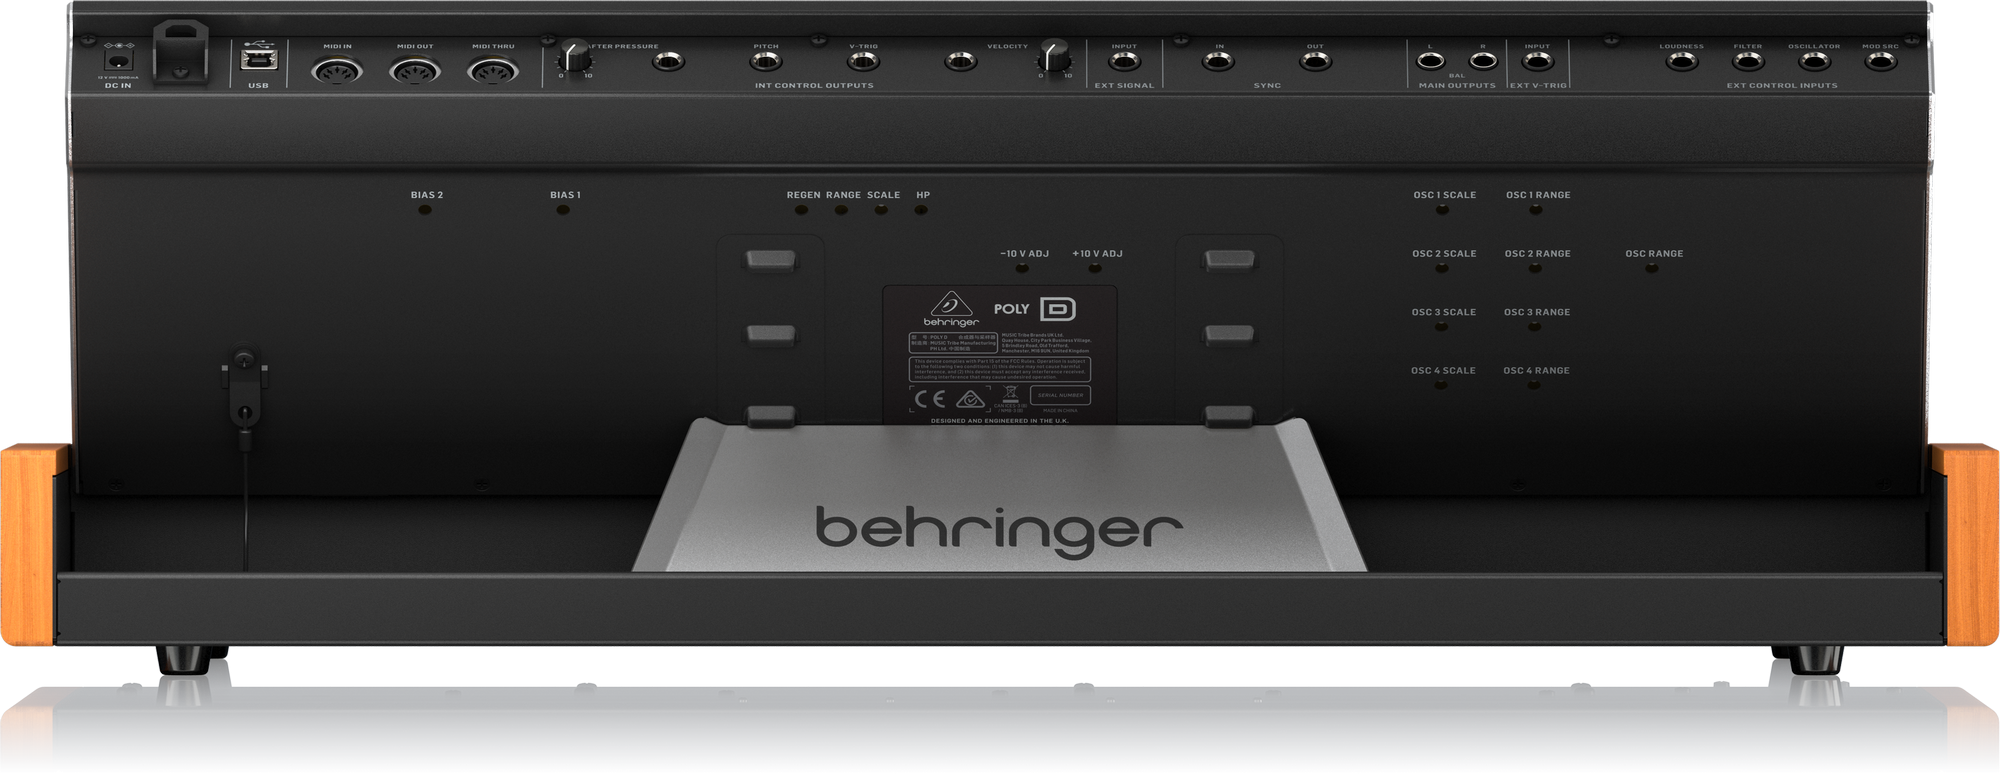 Behringer POLY D - Synthesizer